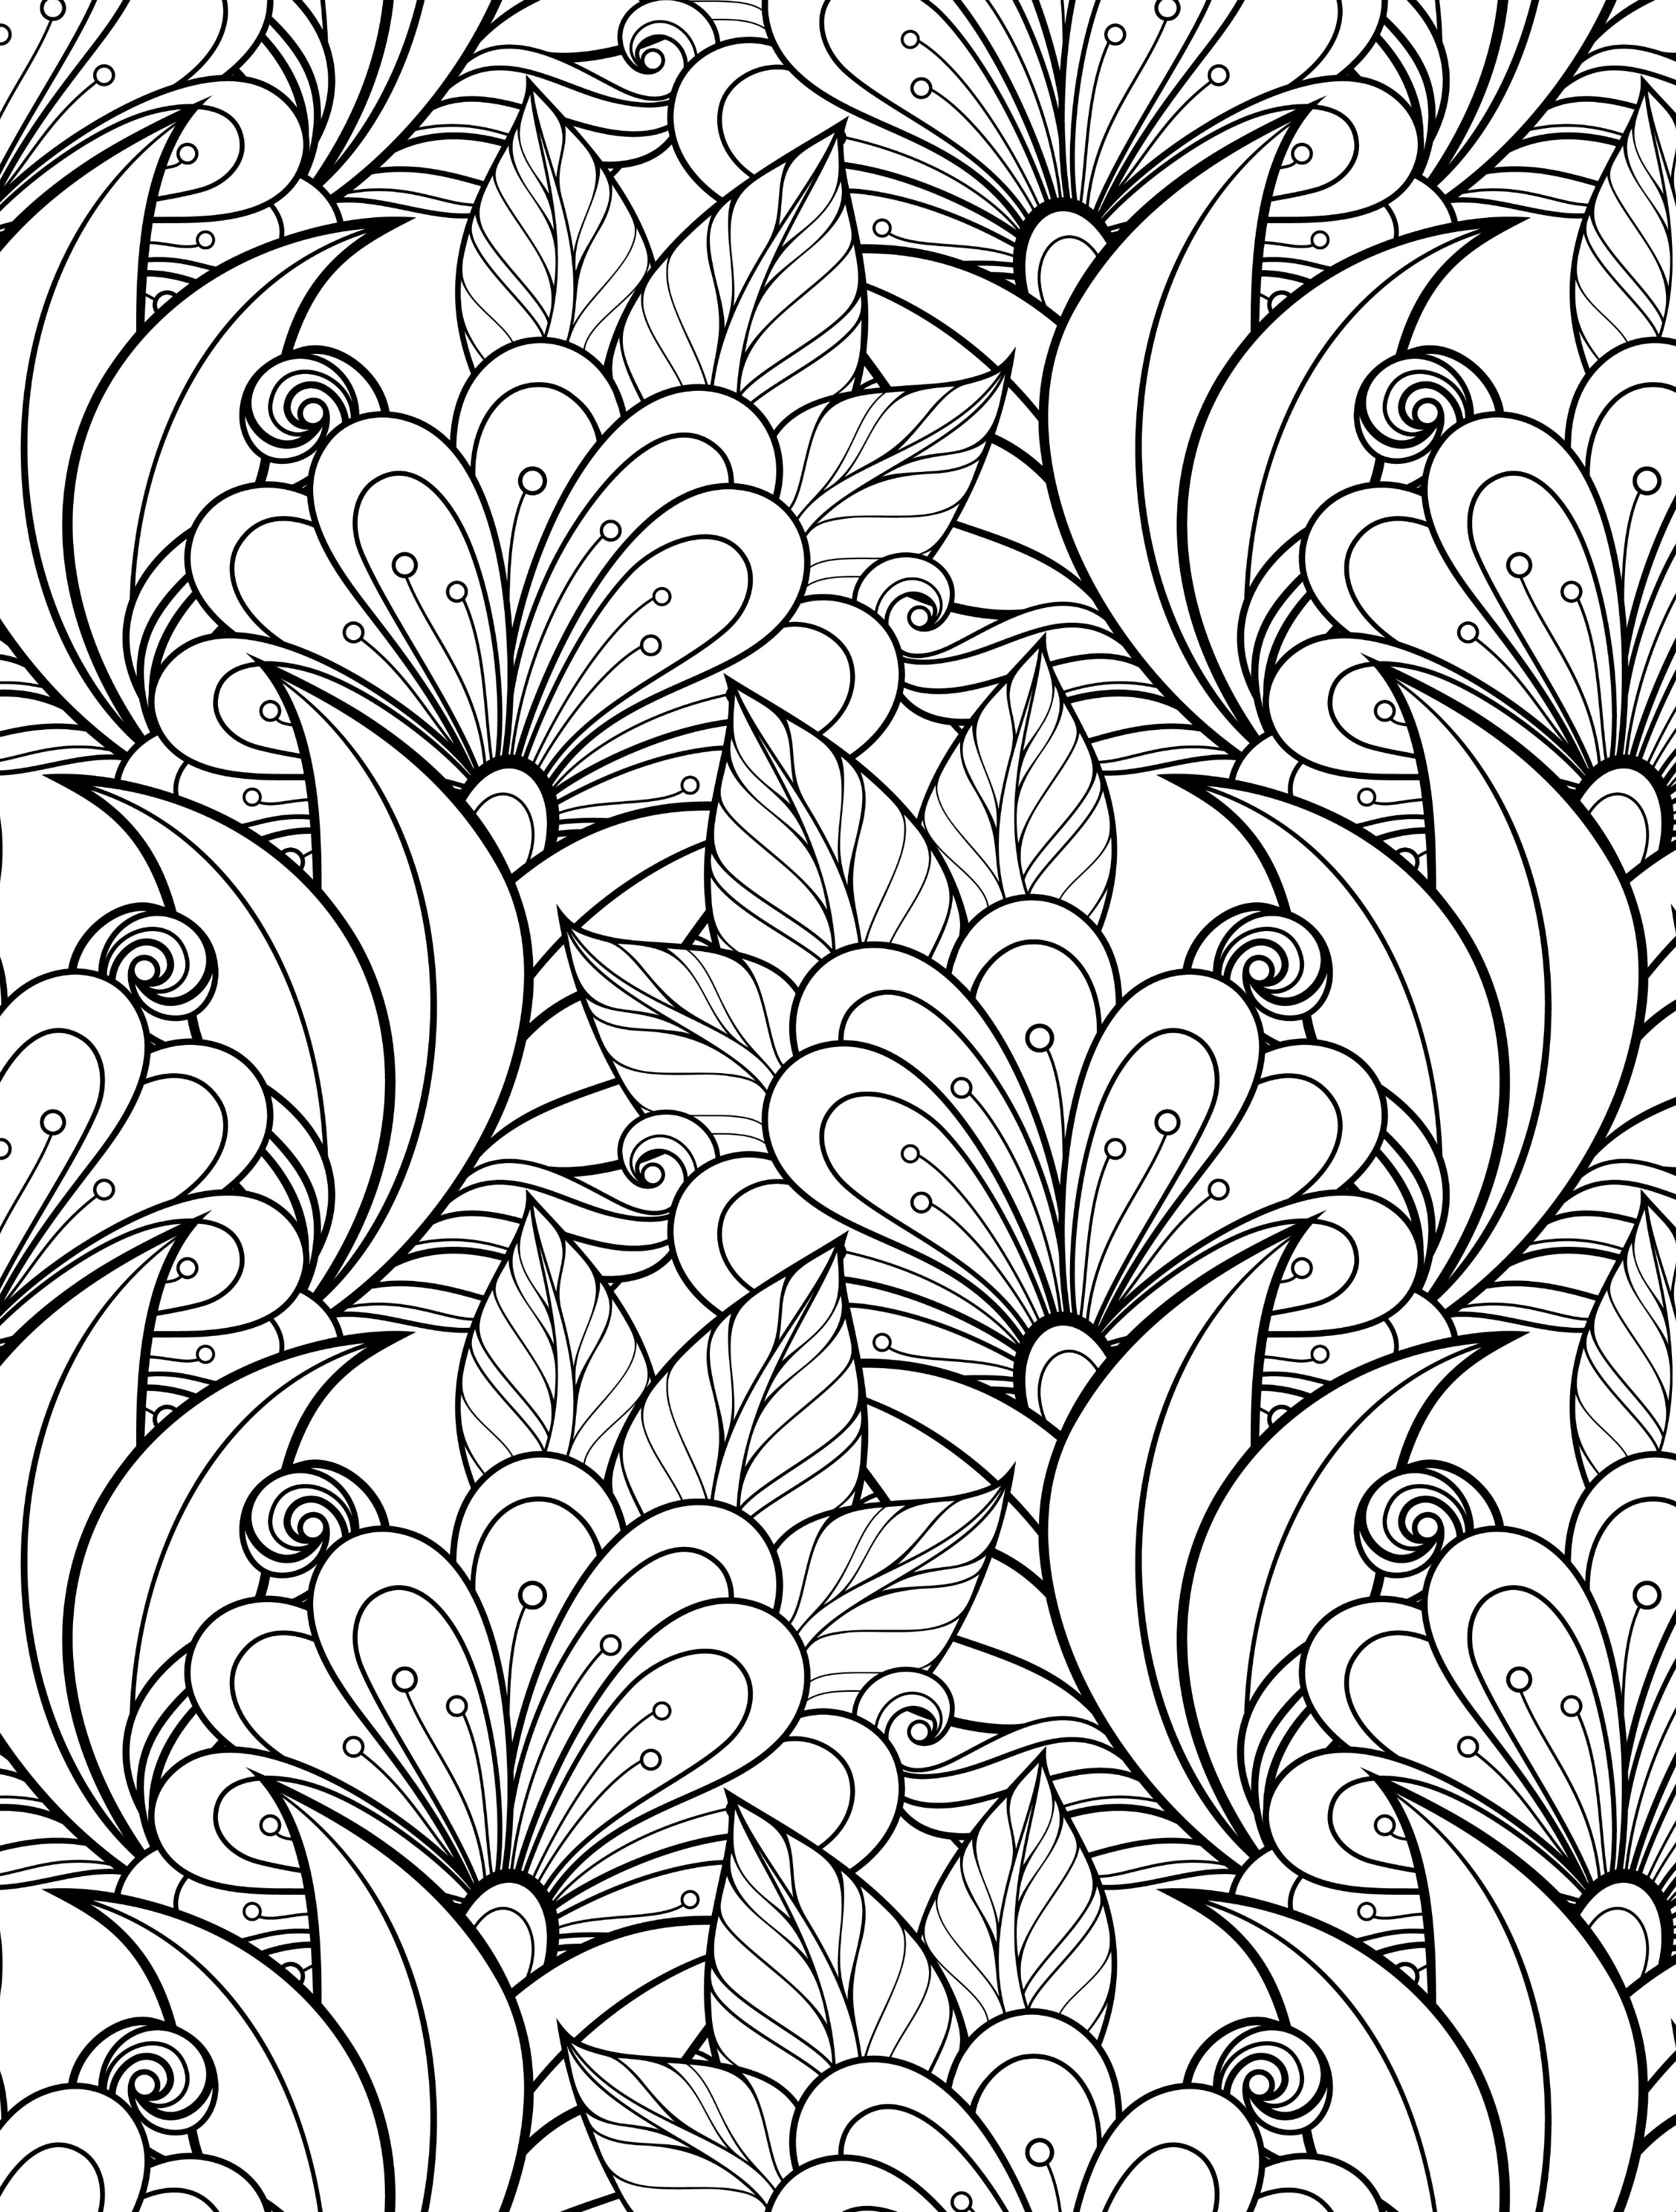 printable design coloring pages free printable rangoli coloring pages for kids design coloring printable pages